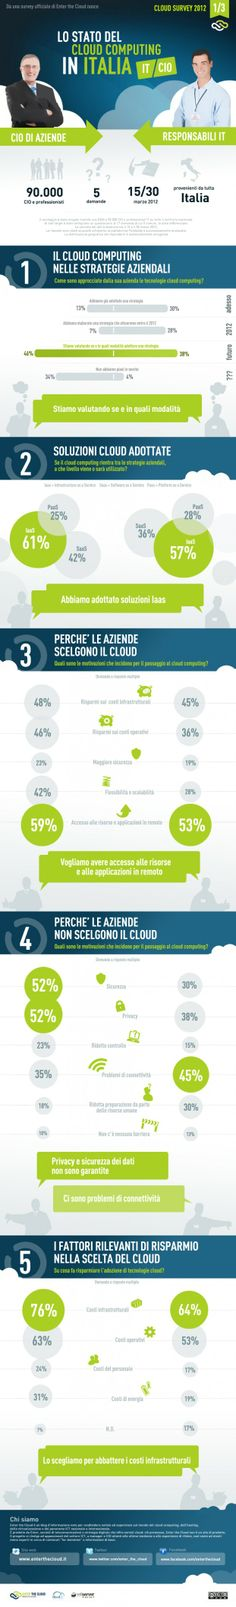 Cloud survey 2012 | Enter the Cloud: la visione di CIO e IT professional a confronto